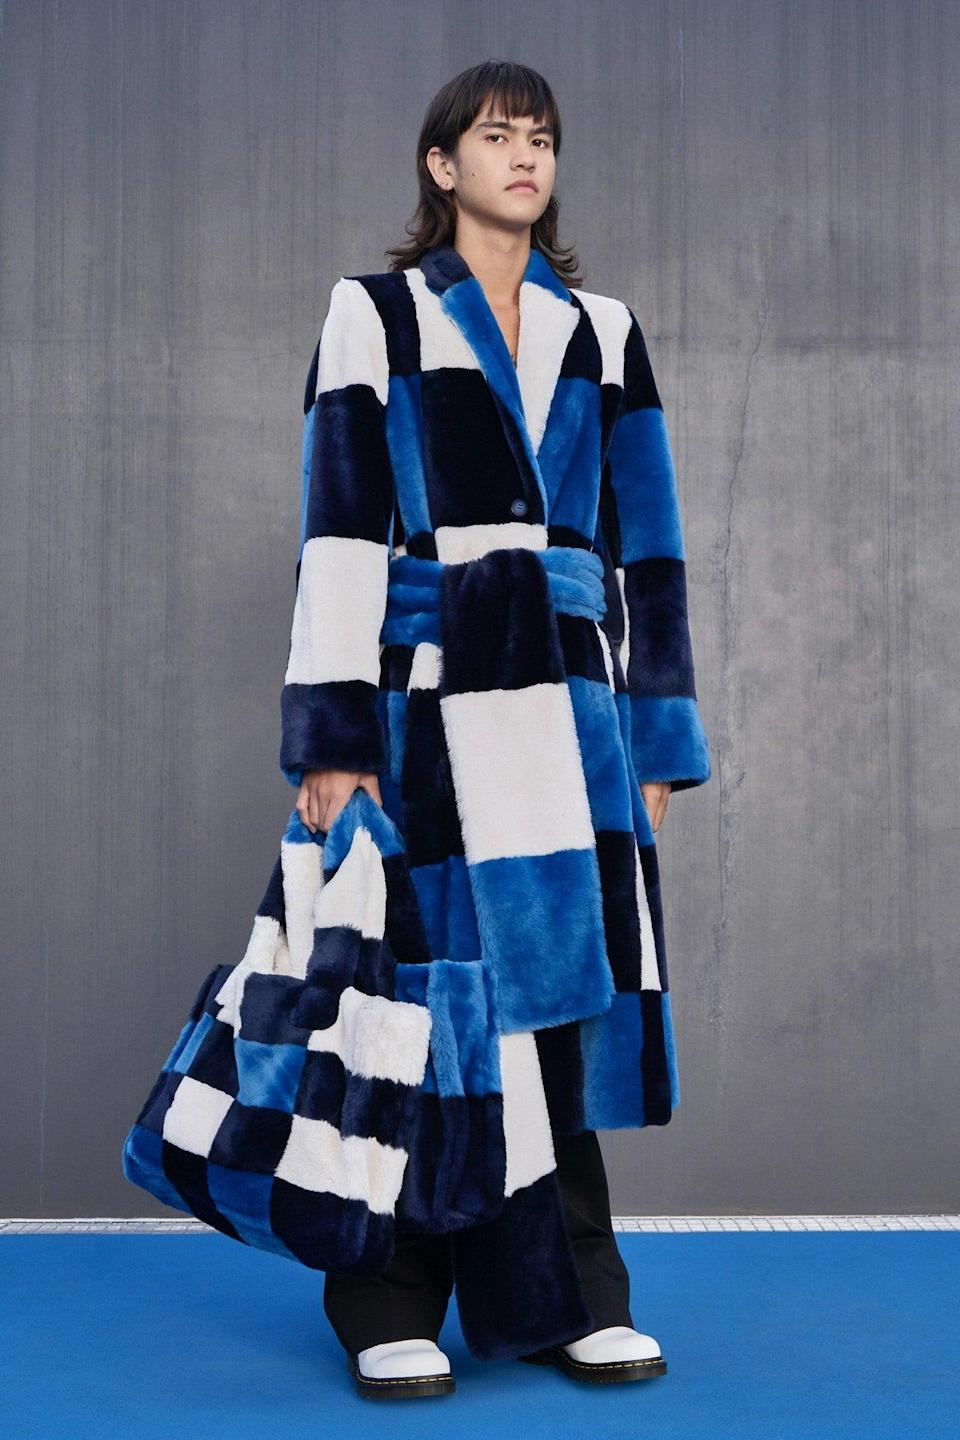 "<h2>Huggable Bags</h2><br>With hugs few and far between, designers have taken to creating outerwear in cloud-like fabrics. This extended to accessories in the form of furry, soft bags that beg to be stroked and held tight.<br><br><em>Claudia Li</em><span class=""copyright"">Photo: Benn Jae.</span>"